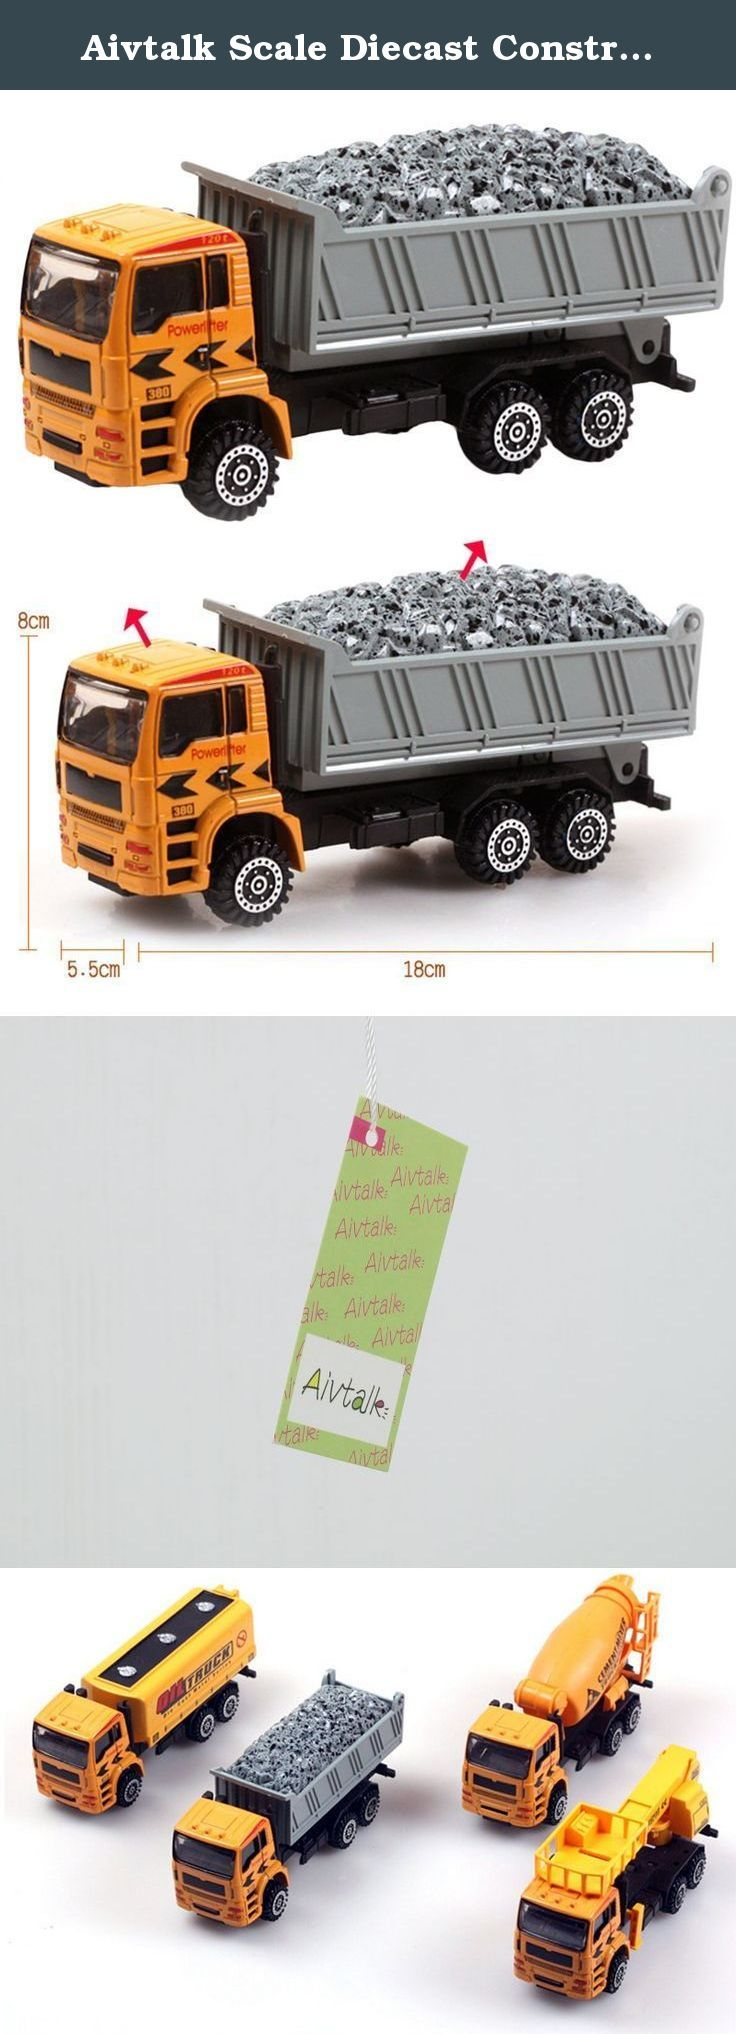 Aivtalk Scale Diecast Construction Vehicle Transport Car Carrier Truck Toy Model Cars for Boys. Features: Super cool gift for kids Completely non-toxic, safe for children Designed with realistic features in a smaller scale Specifications: Material: Metal & Plastic Scale:1:50 For Ages: 3 years and up Dimensions: approx. 18*8*5.5cm Color:As picture Package includes: 1 * Toy truck.